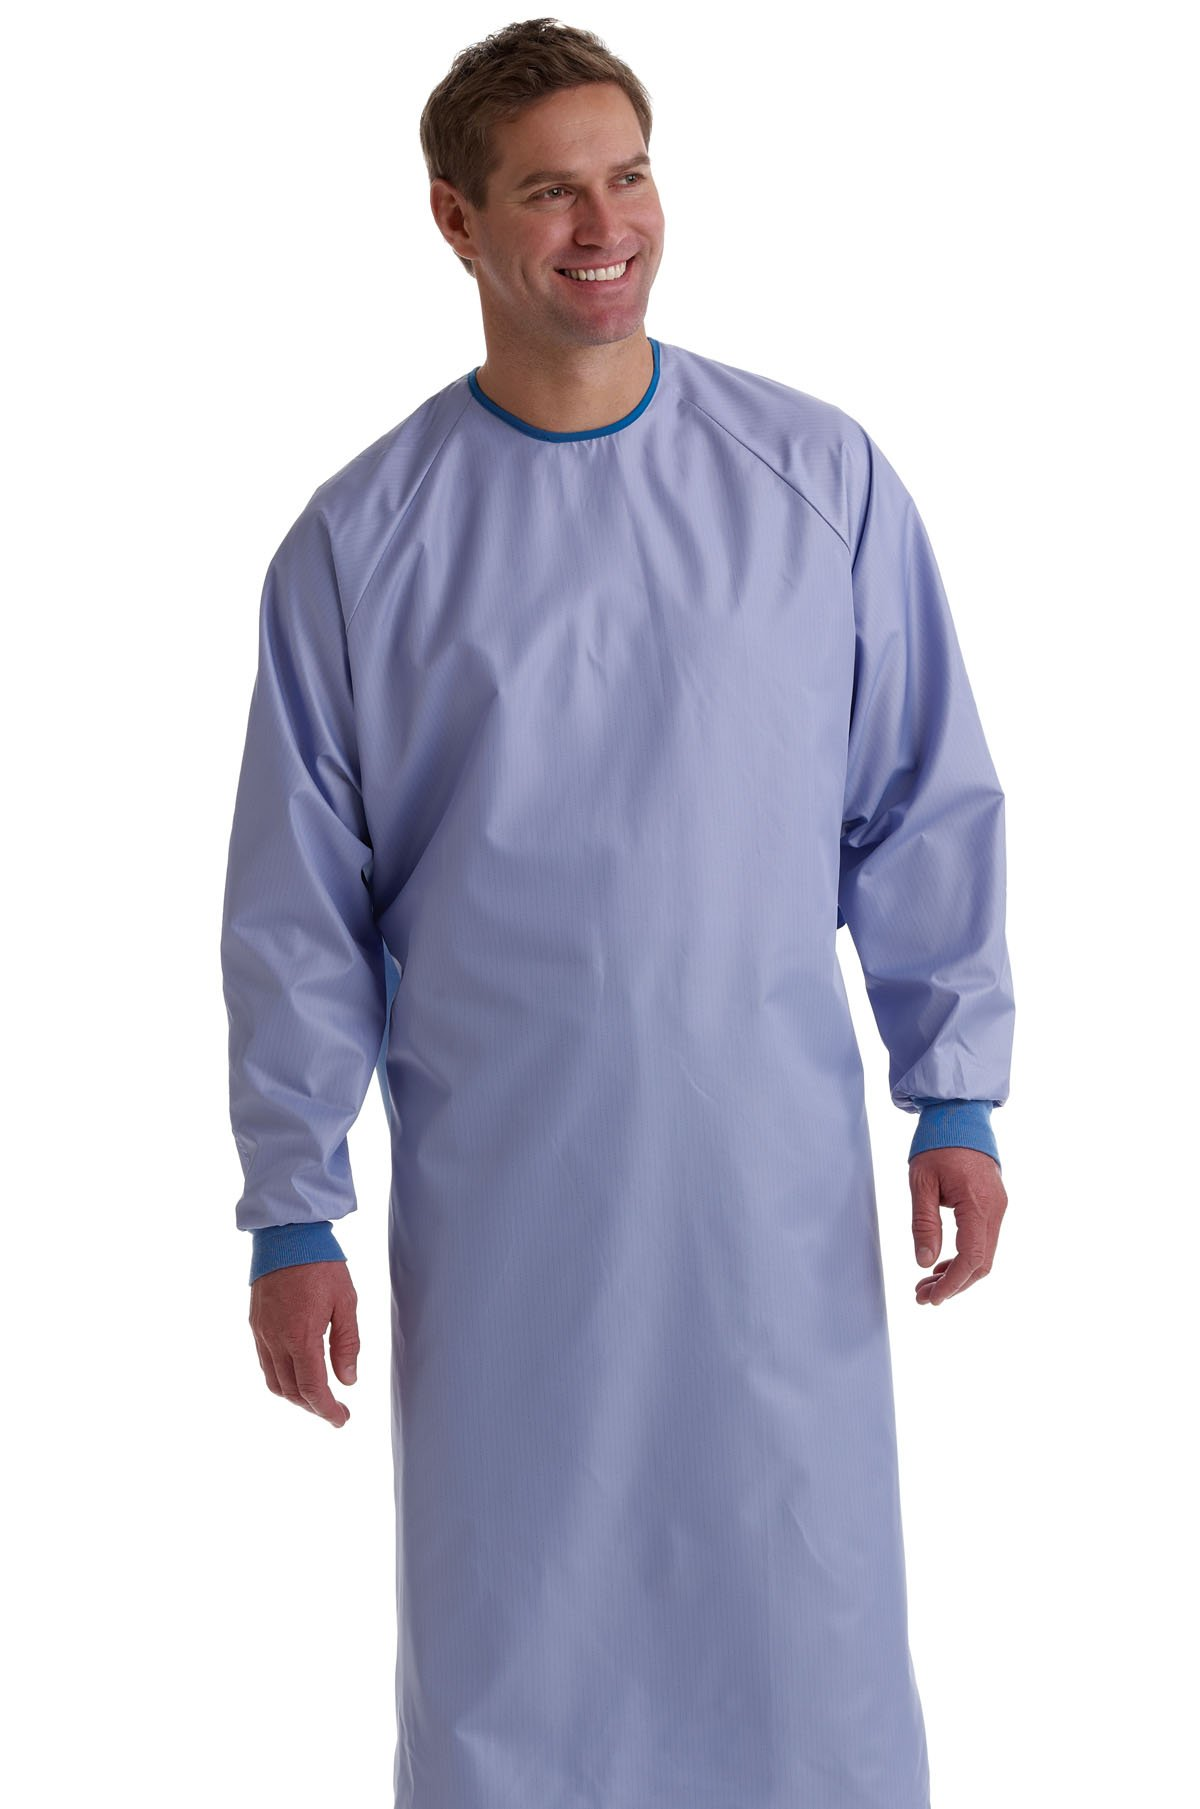 Medline MDT012090L 1-Ply Blockade AngelStat Surgical Gown, Tie Neck and Back Closure, Non Sterile, Large, Ceil Blue (Pack of 12)